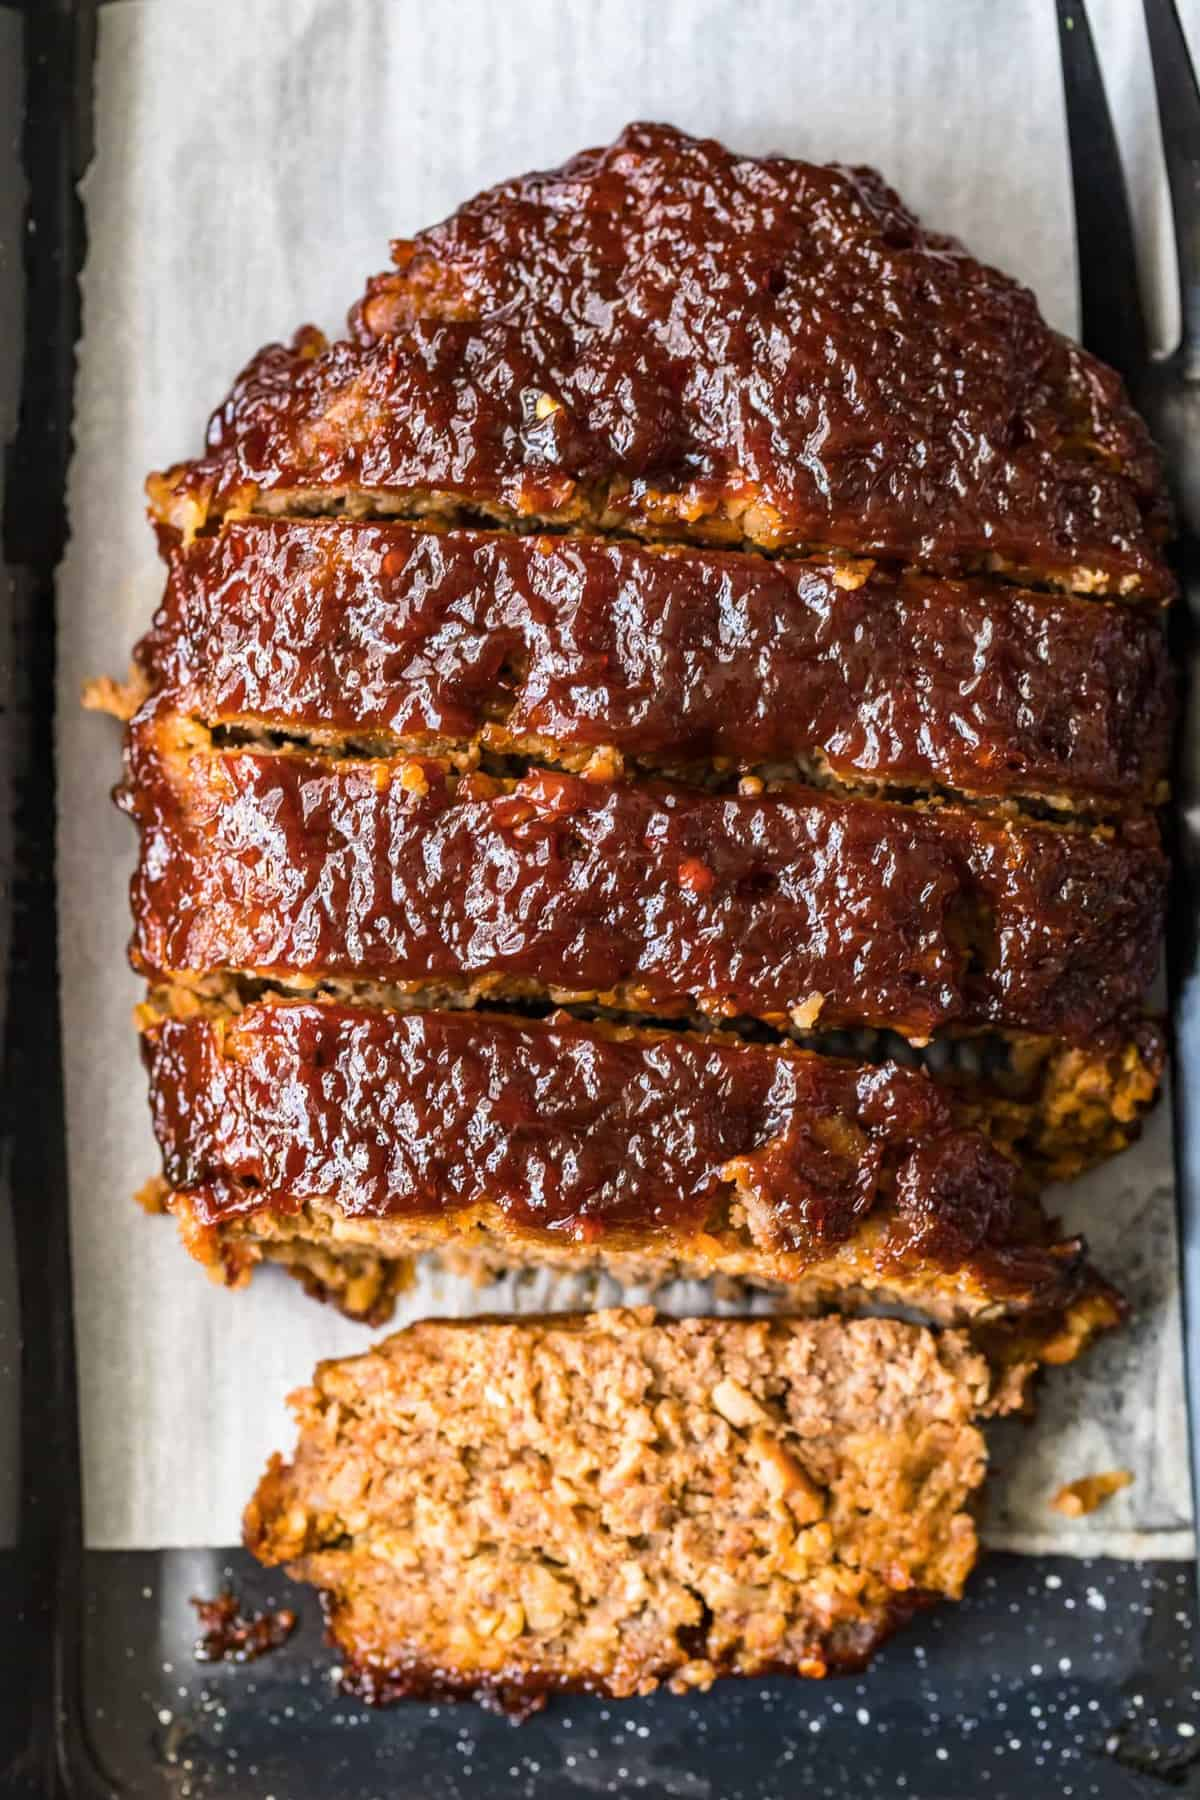 Bacon Meatloaf cut into slices